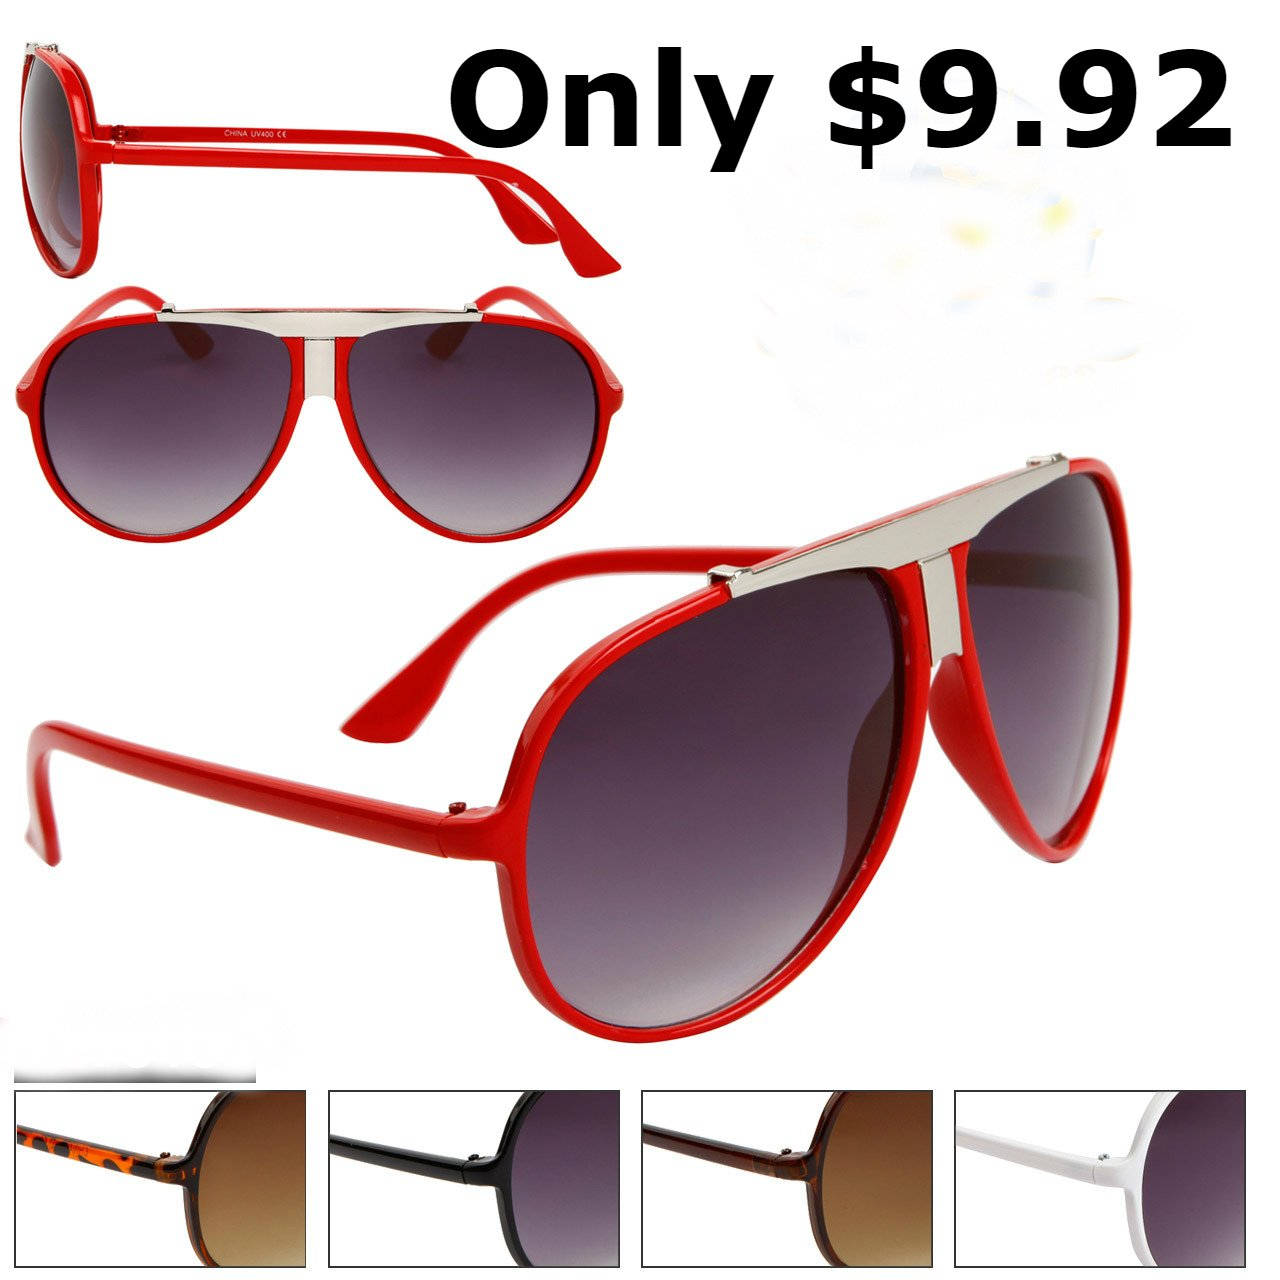 MEN'S DESIGNER INSPIRED MILLIONAIRE LOOK RED SUNGLASSES